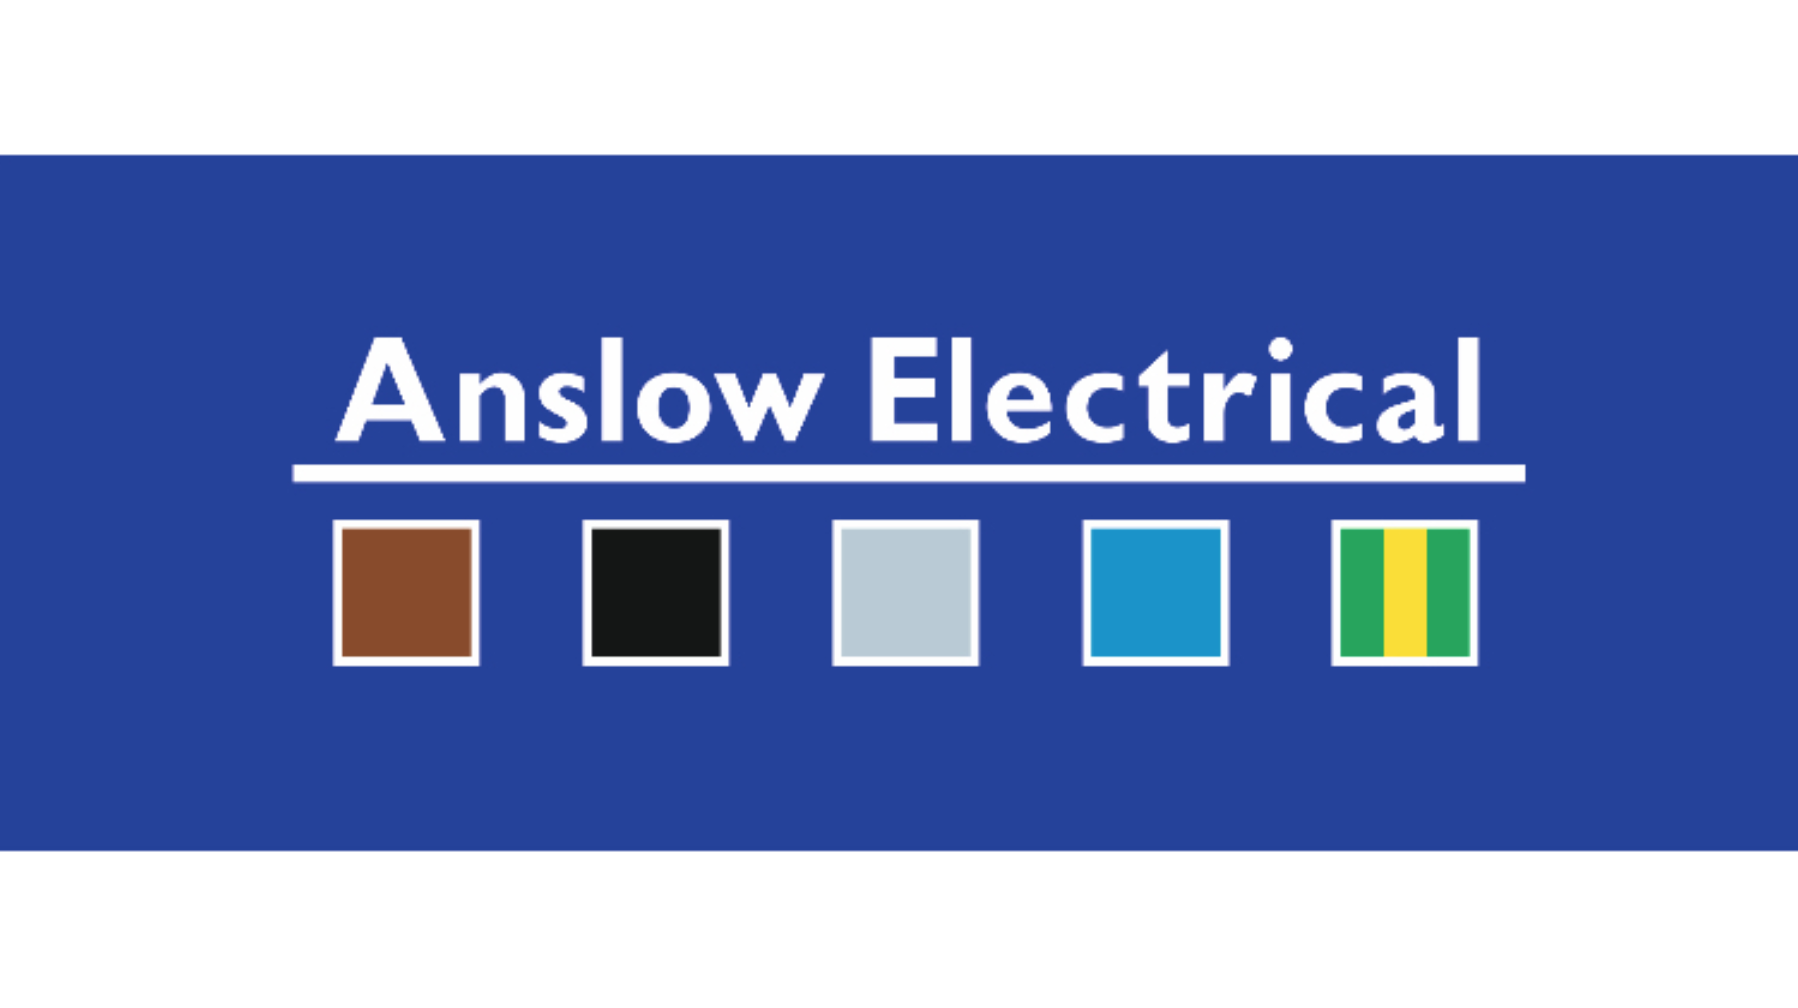 Anslow Electrical